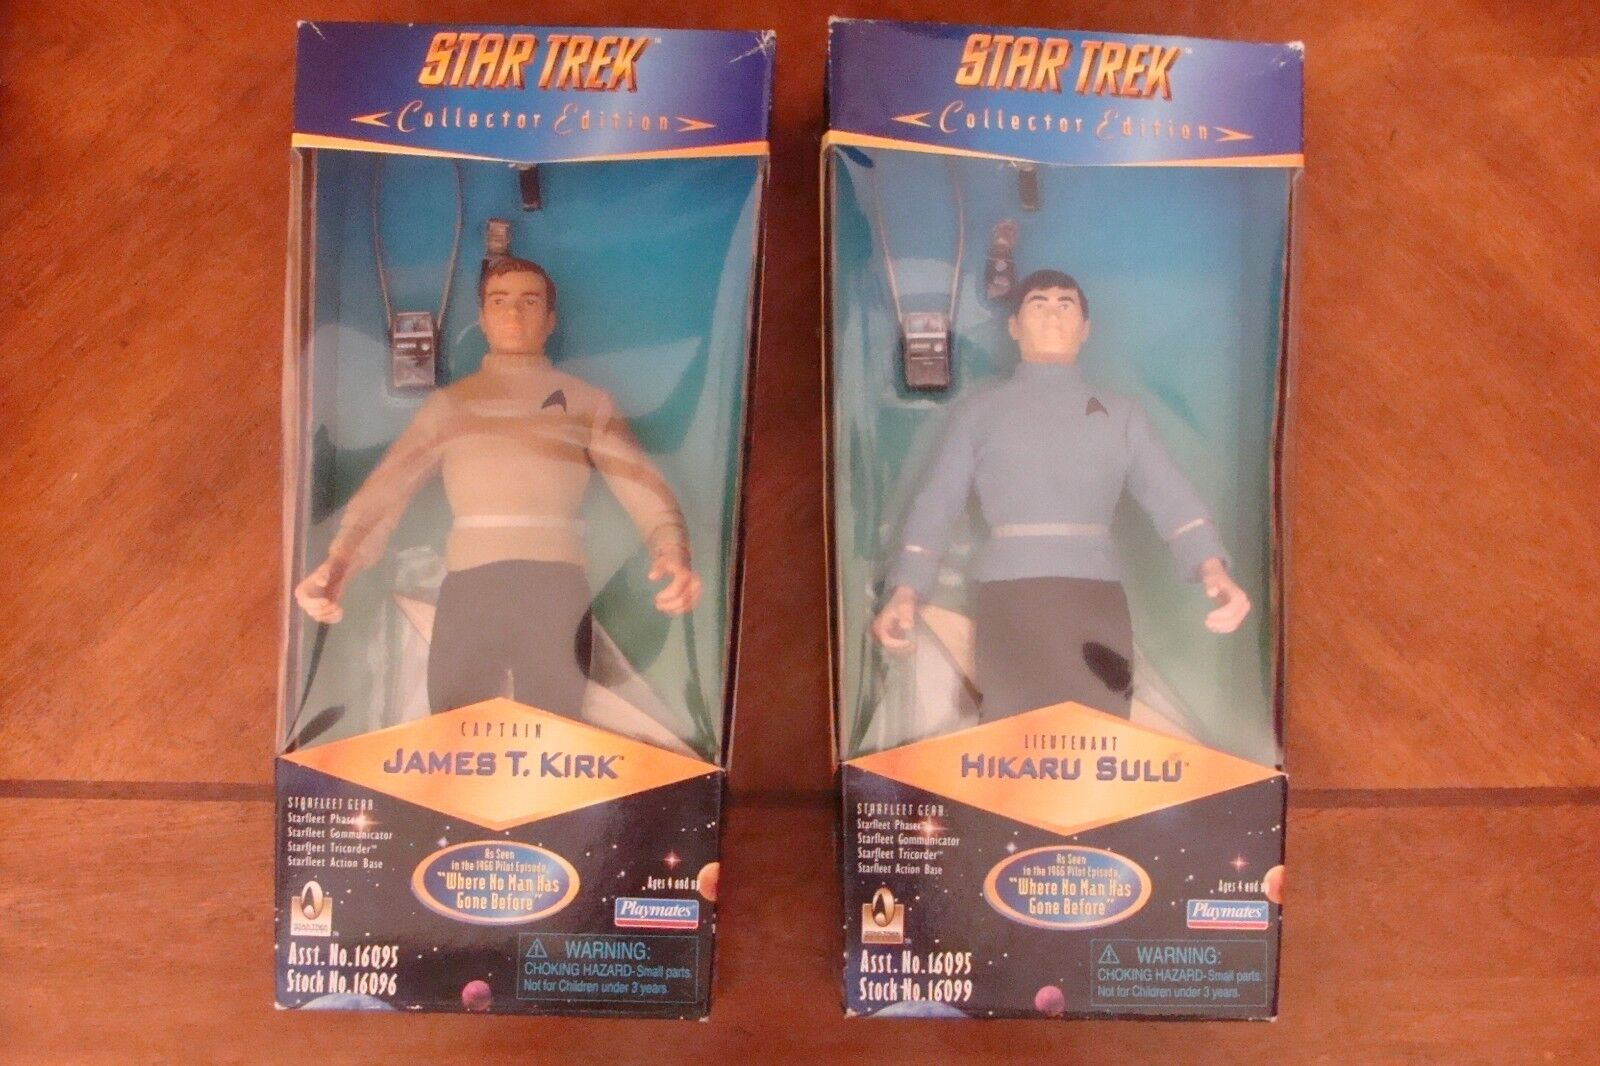 Star Trek Playmates Captain Kirk Hiraku Sulu Collector Series Figures Original 2